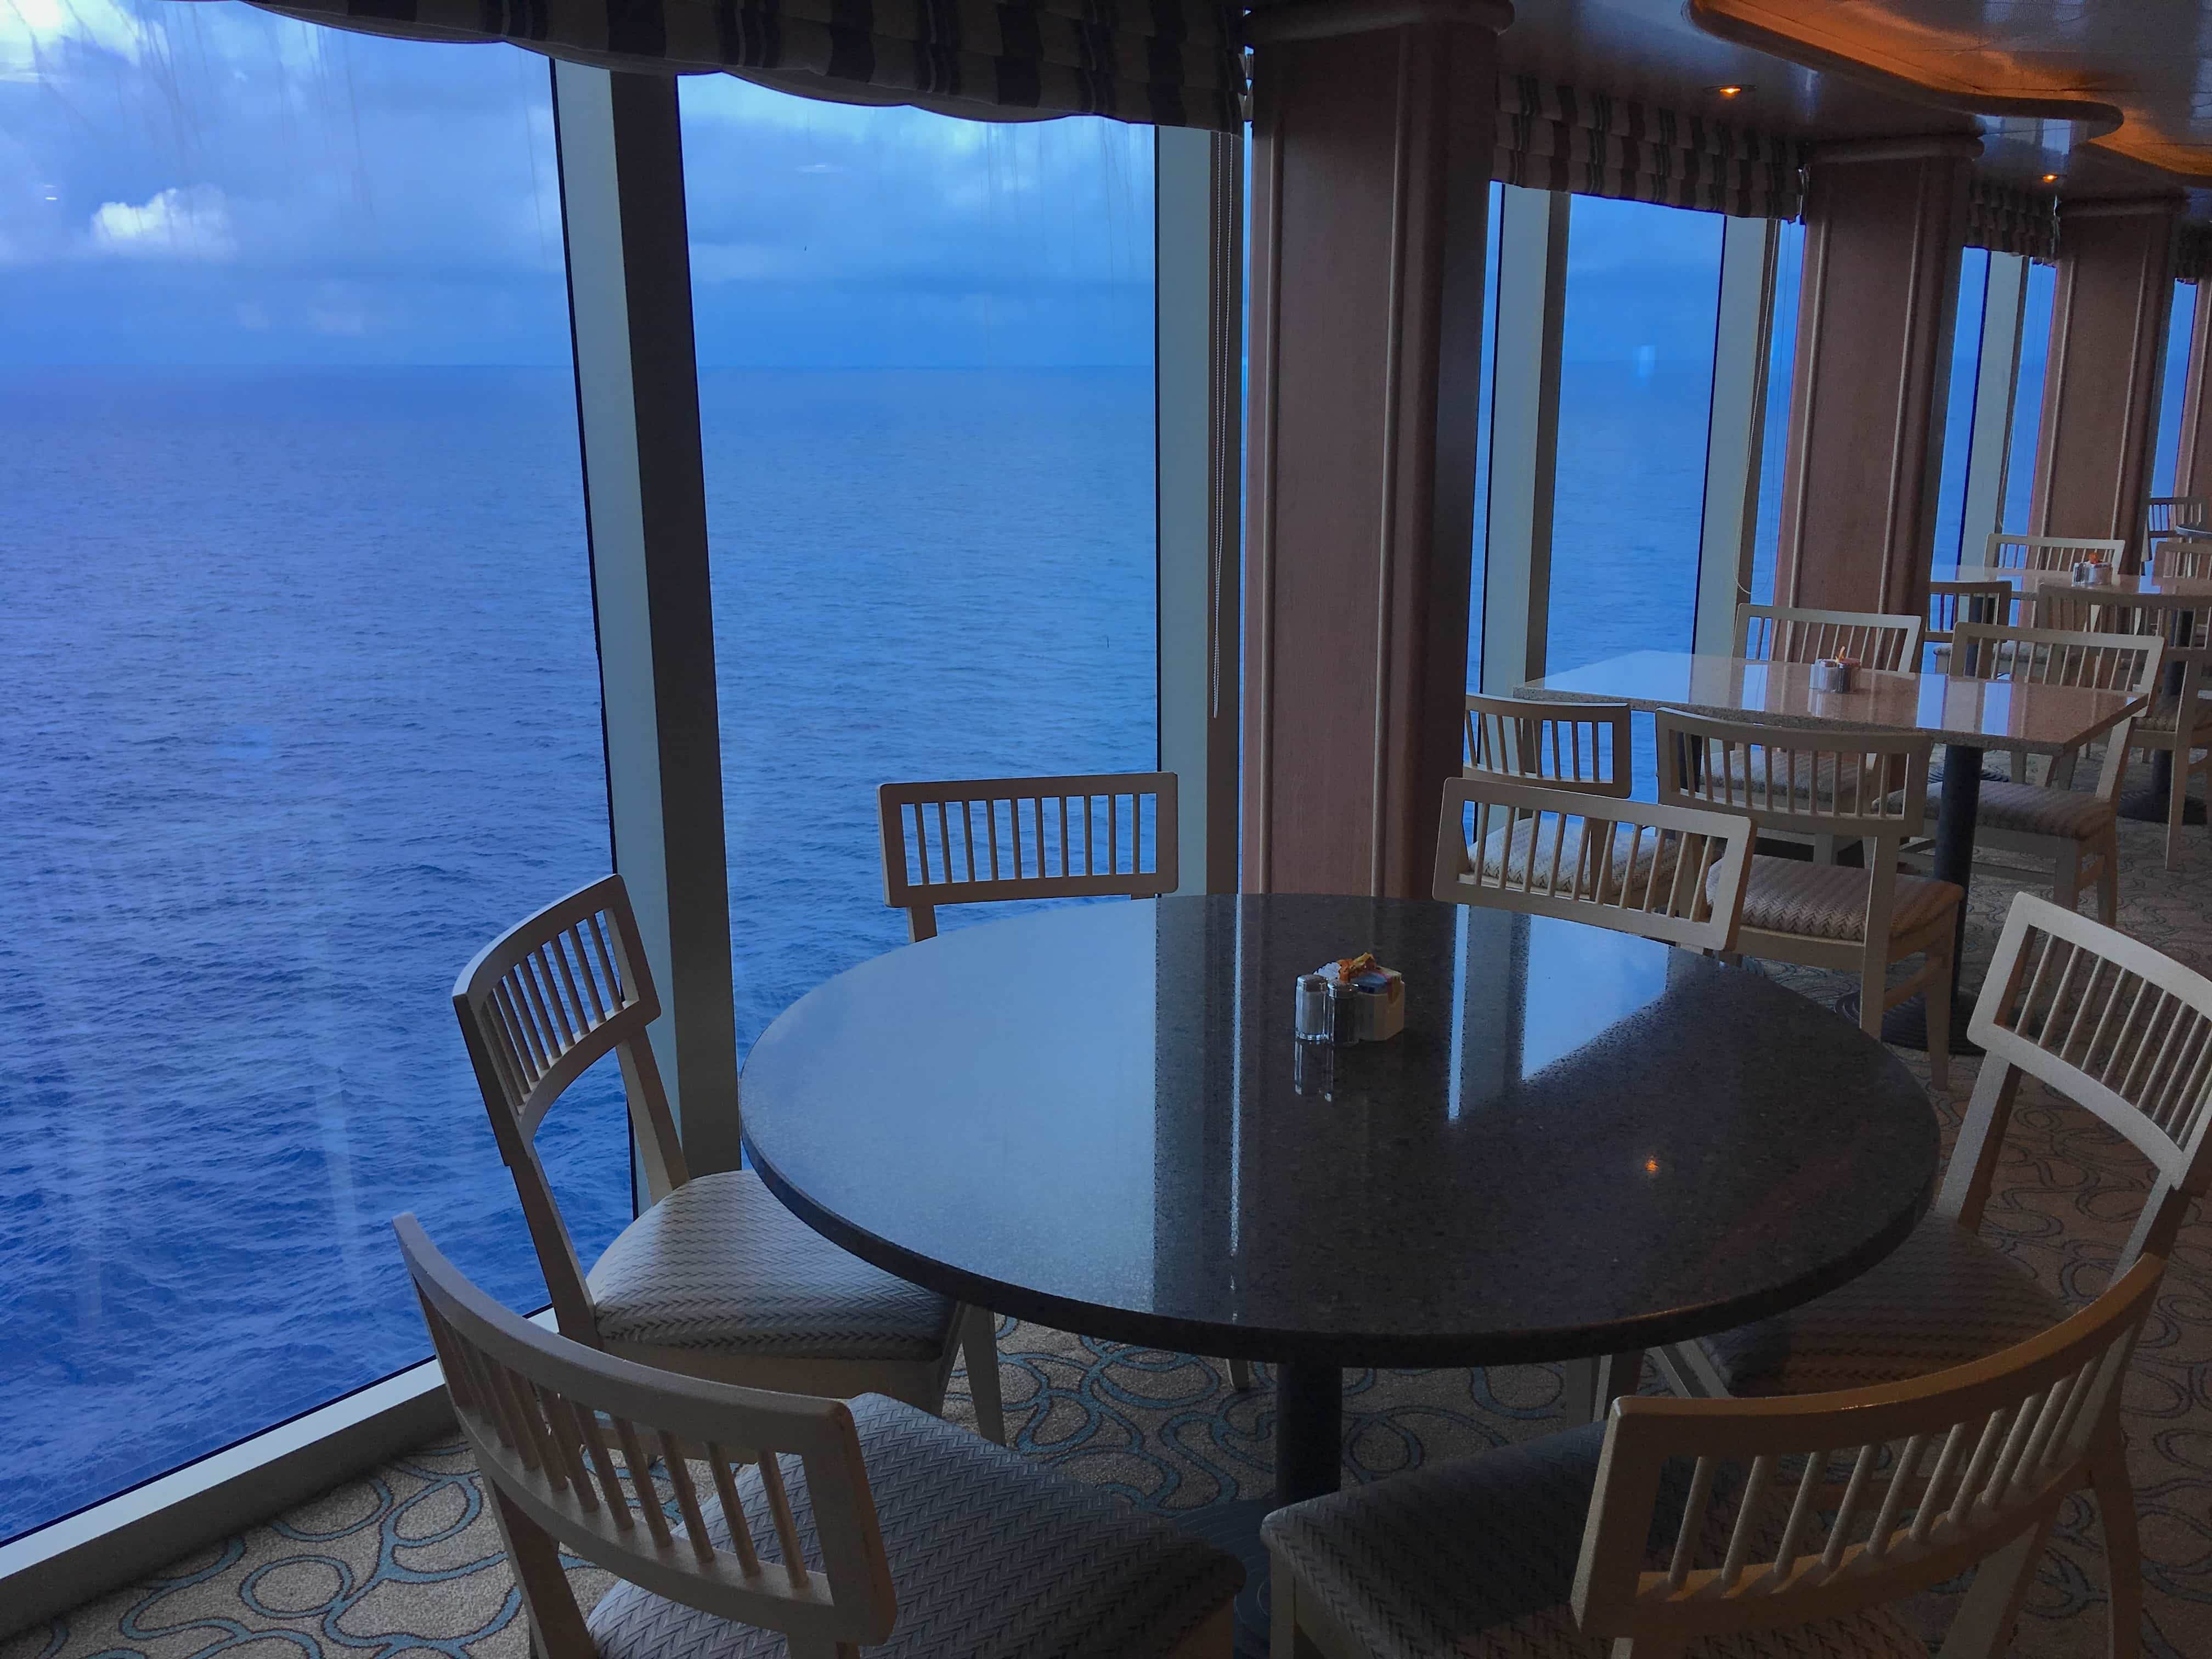 golden princess buffet tables chairs view of the ocean